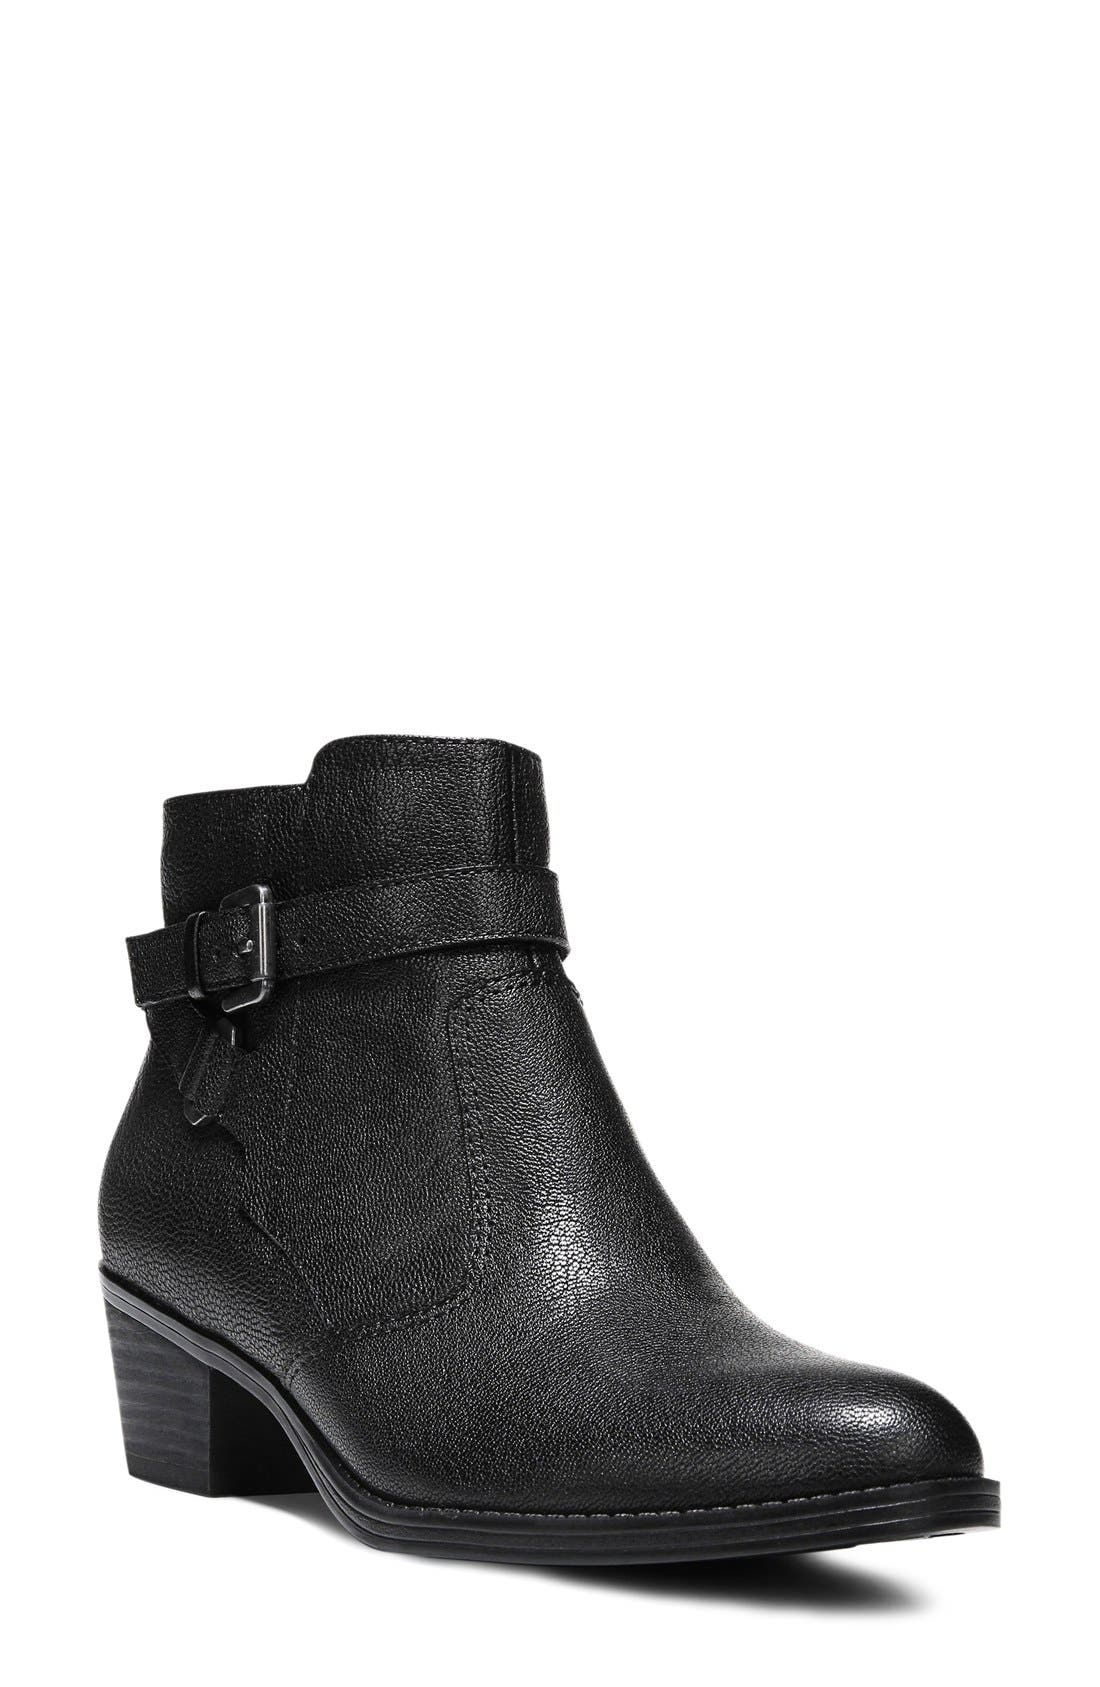 'Zakira' Bootie,                         Main,                         color, 001